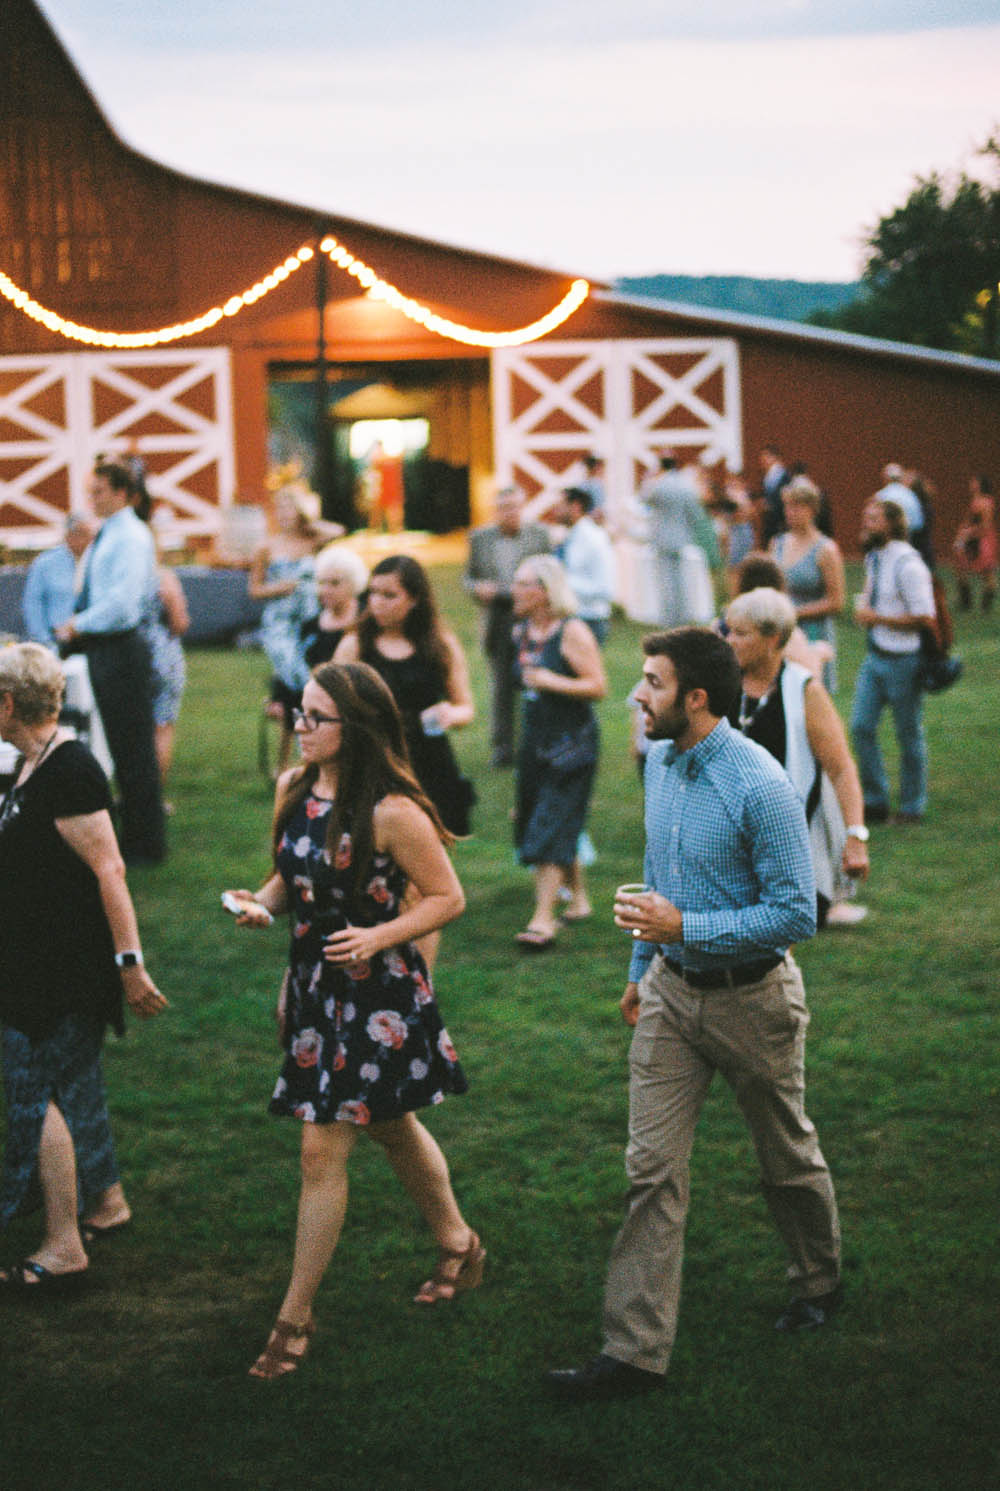 lilac farms at arrington vineyards classic film documentary wedding photographer in franklin real moments photographers ©2016abigailbobophotography-62.jpg